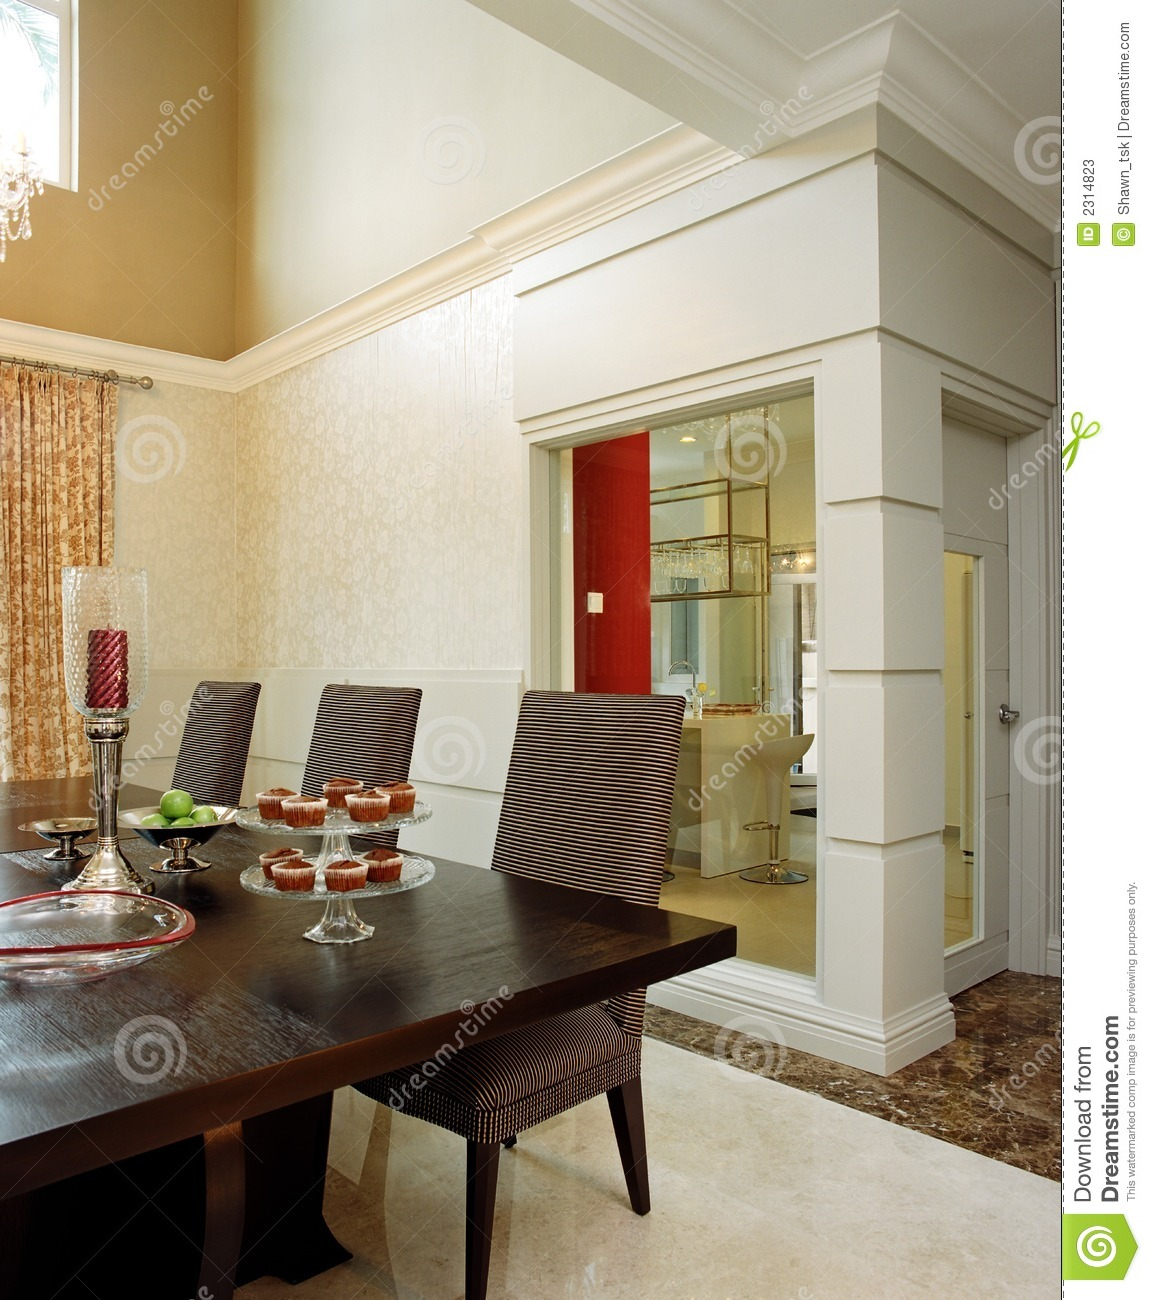 Interior design dining area stock photos image 2314823 for Interior design for dining area